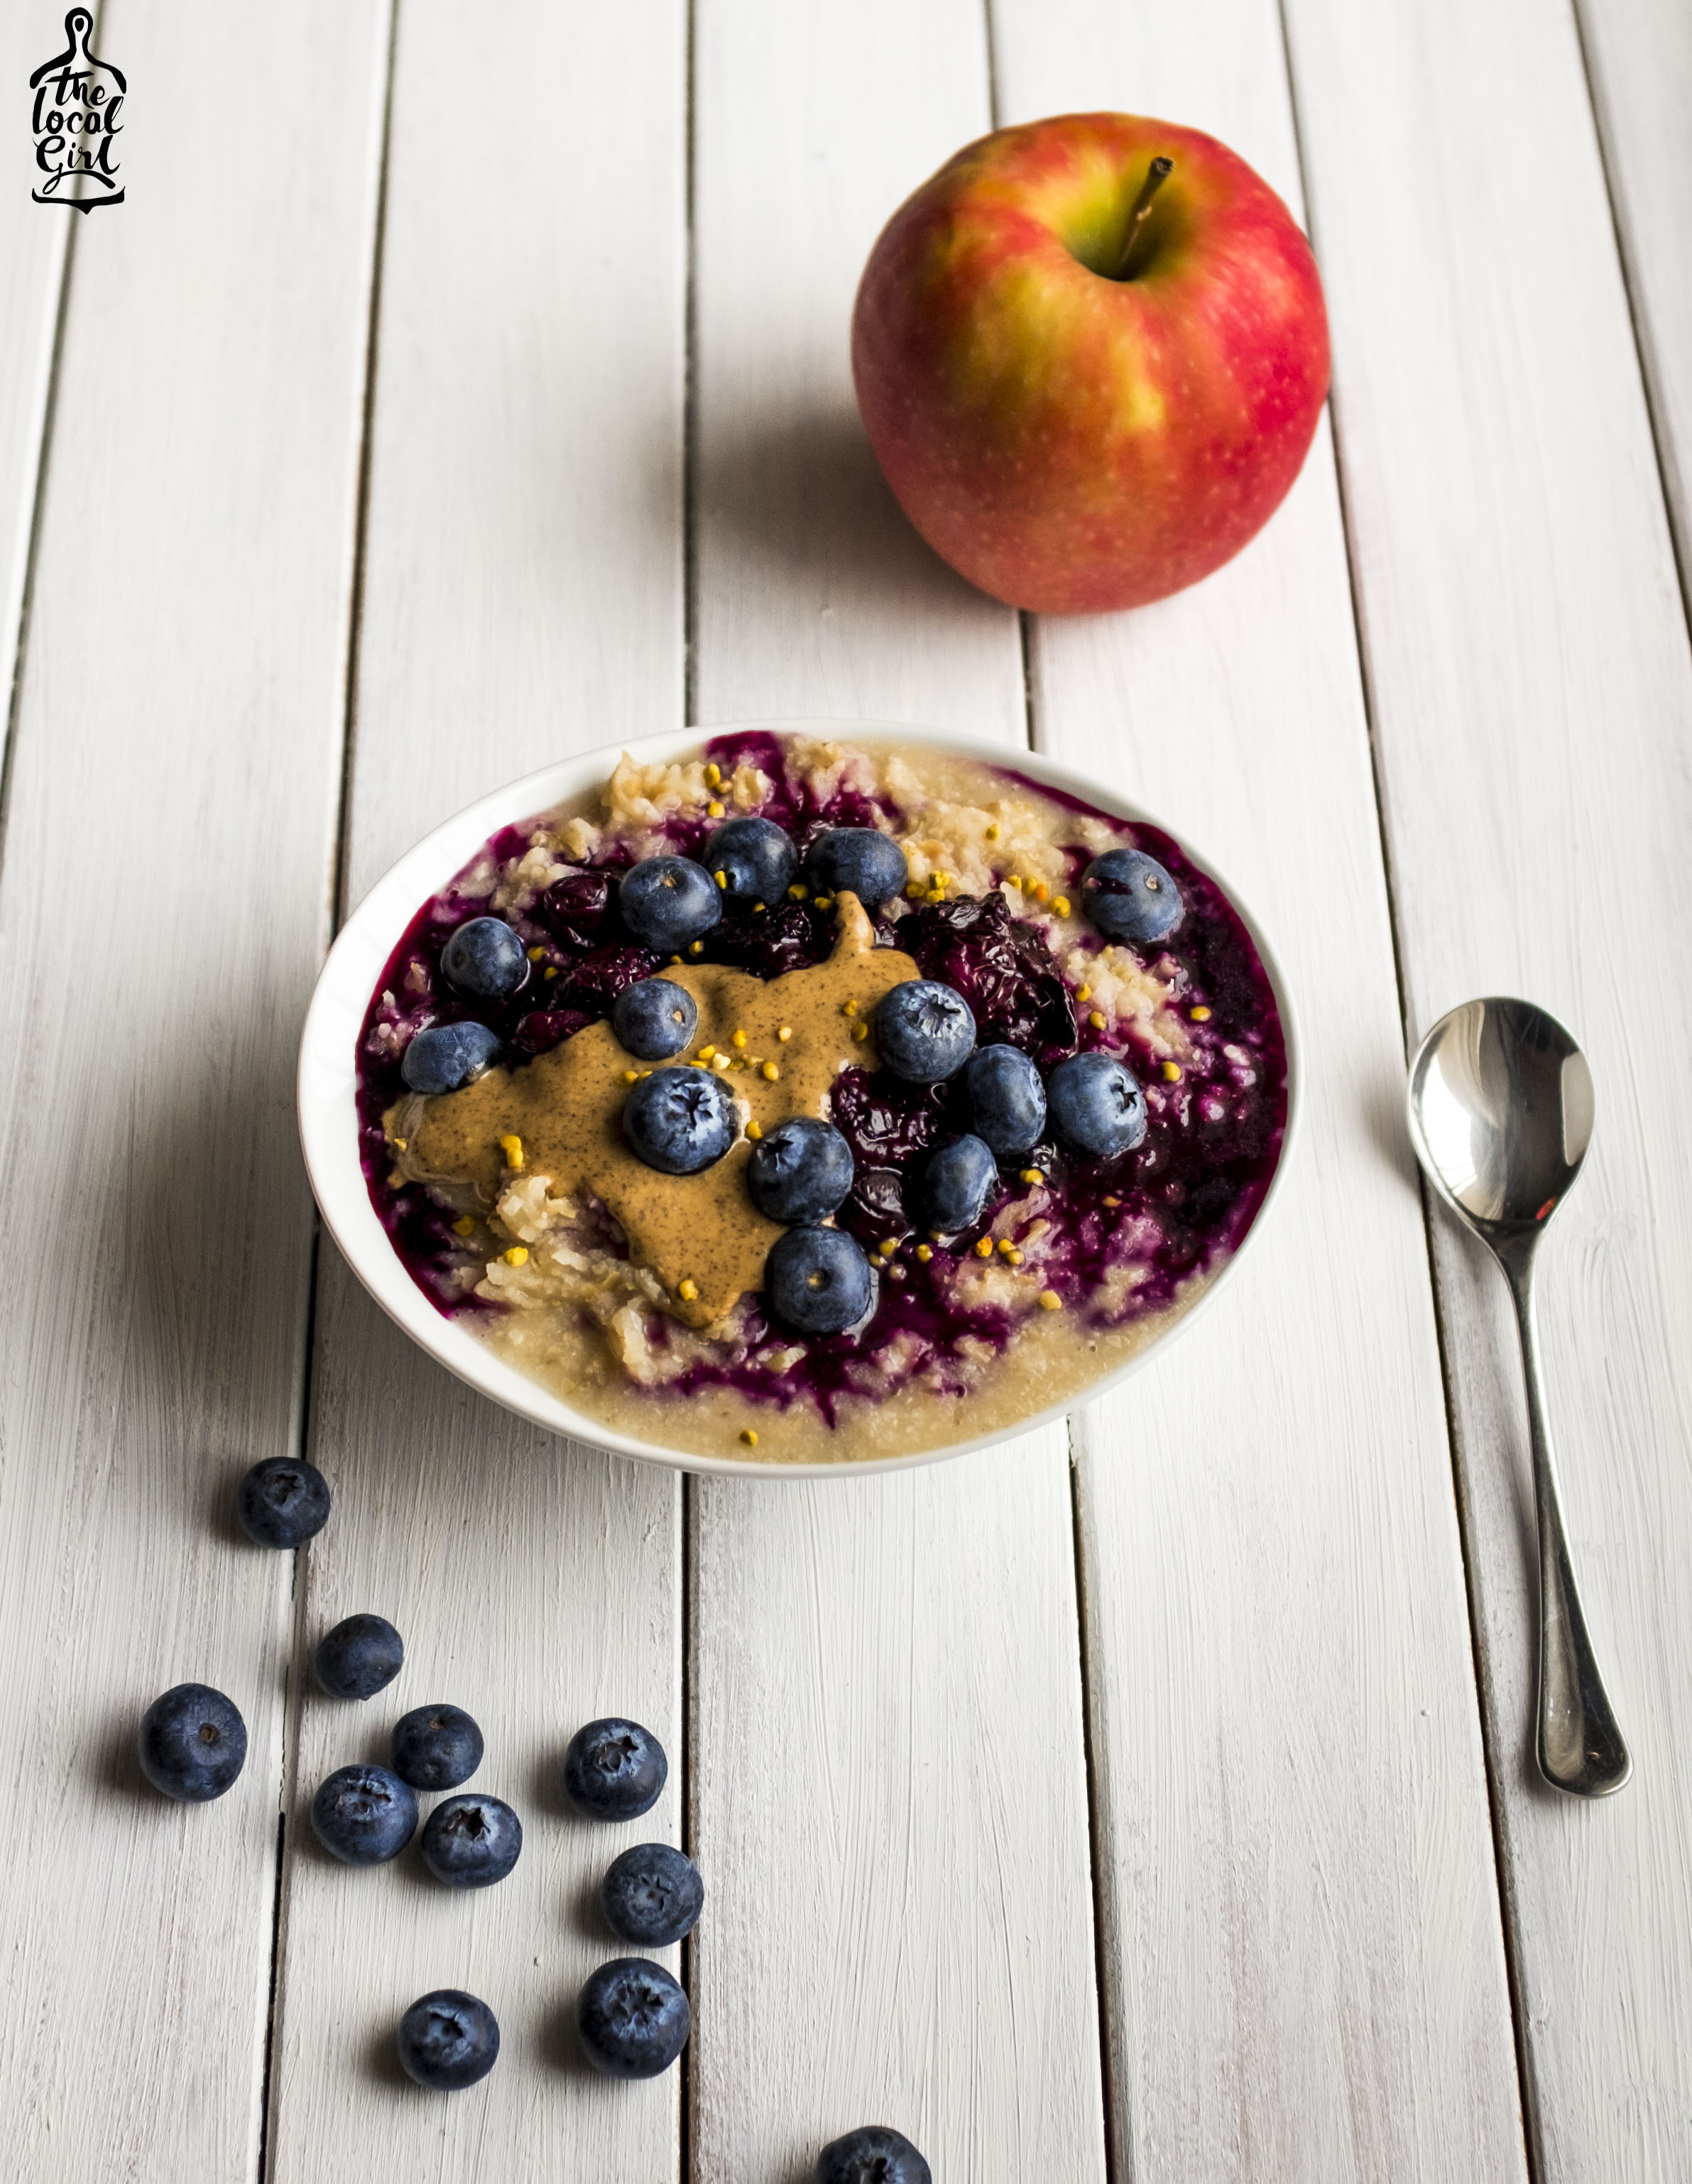 Apple and Blueberry Porridge -1.JPG